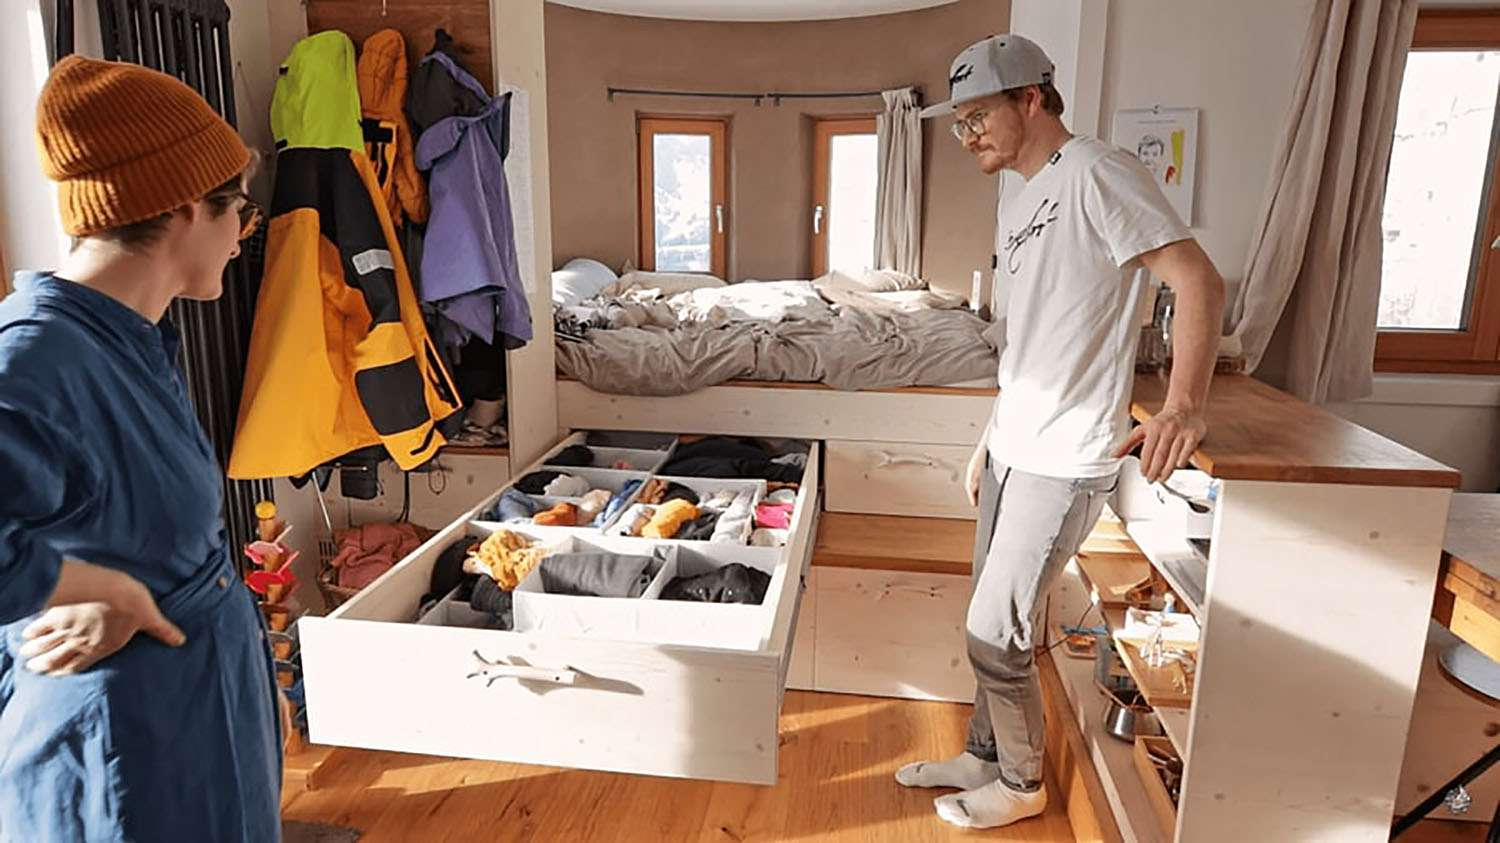 Hallo Holger tiny house long drawers under bed